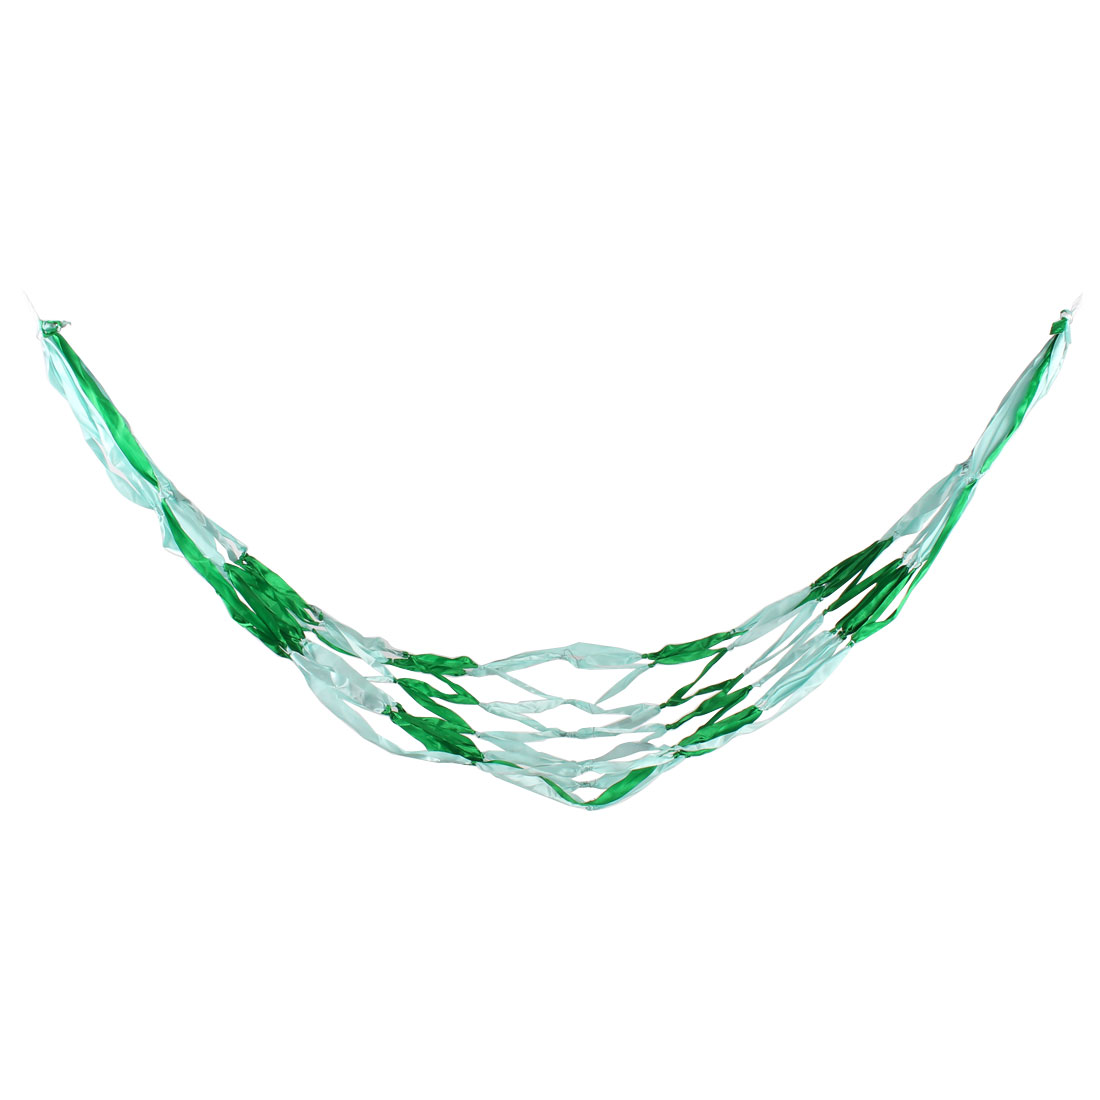 Home Camping Leisure Outfitter Netty Meshy Hanging Bed Hammock Blue Green